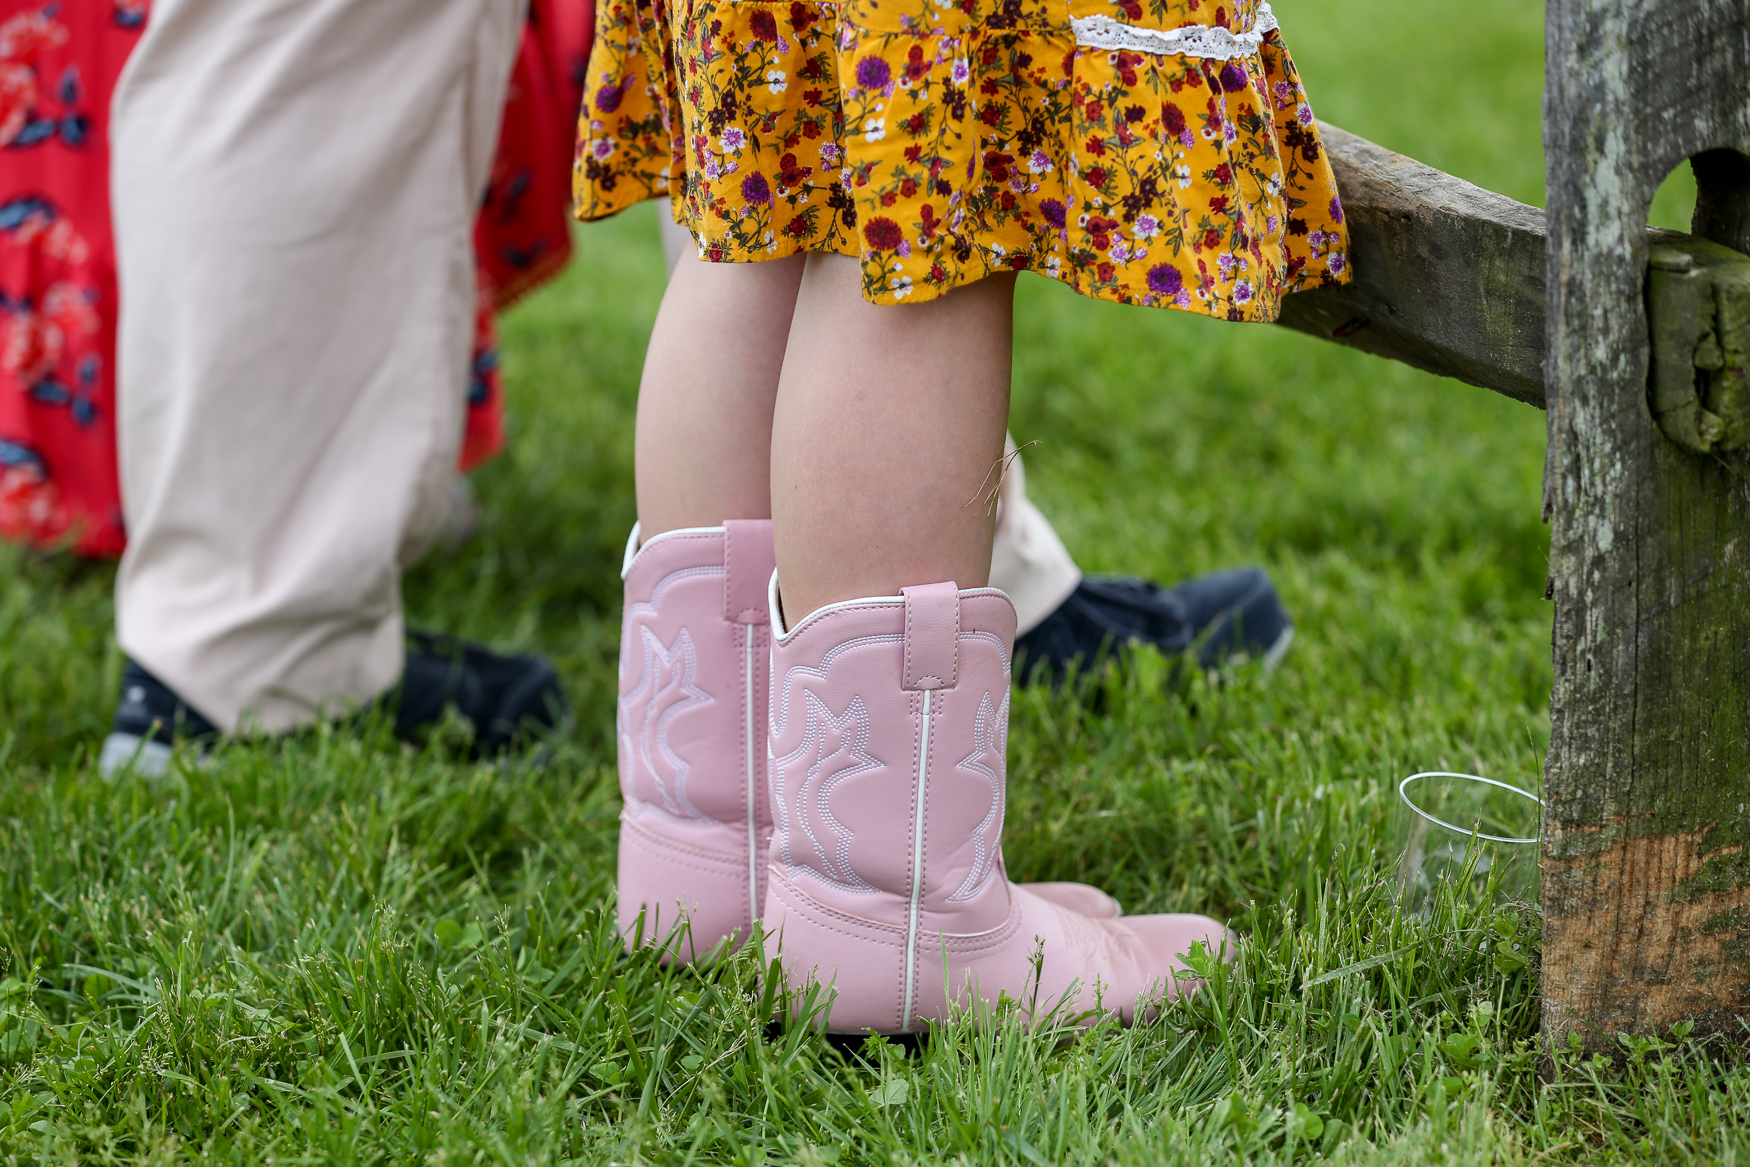 Can we get these pink boots made in adult sizes? Asking for a friend...{ } (Amanda Andrade-Rhoades/DC Refined)